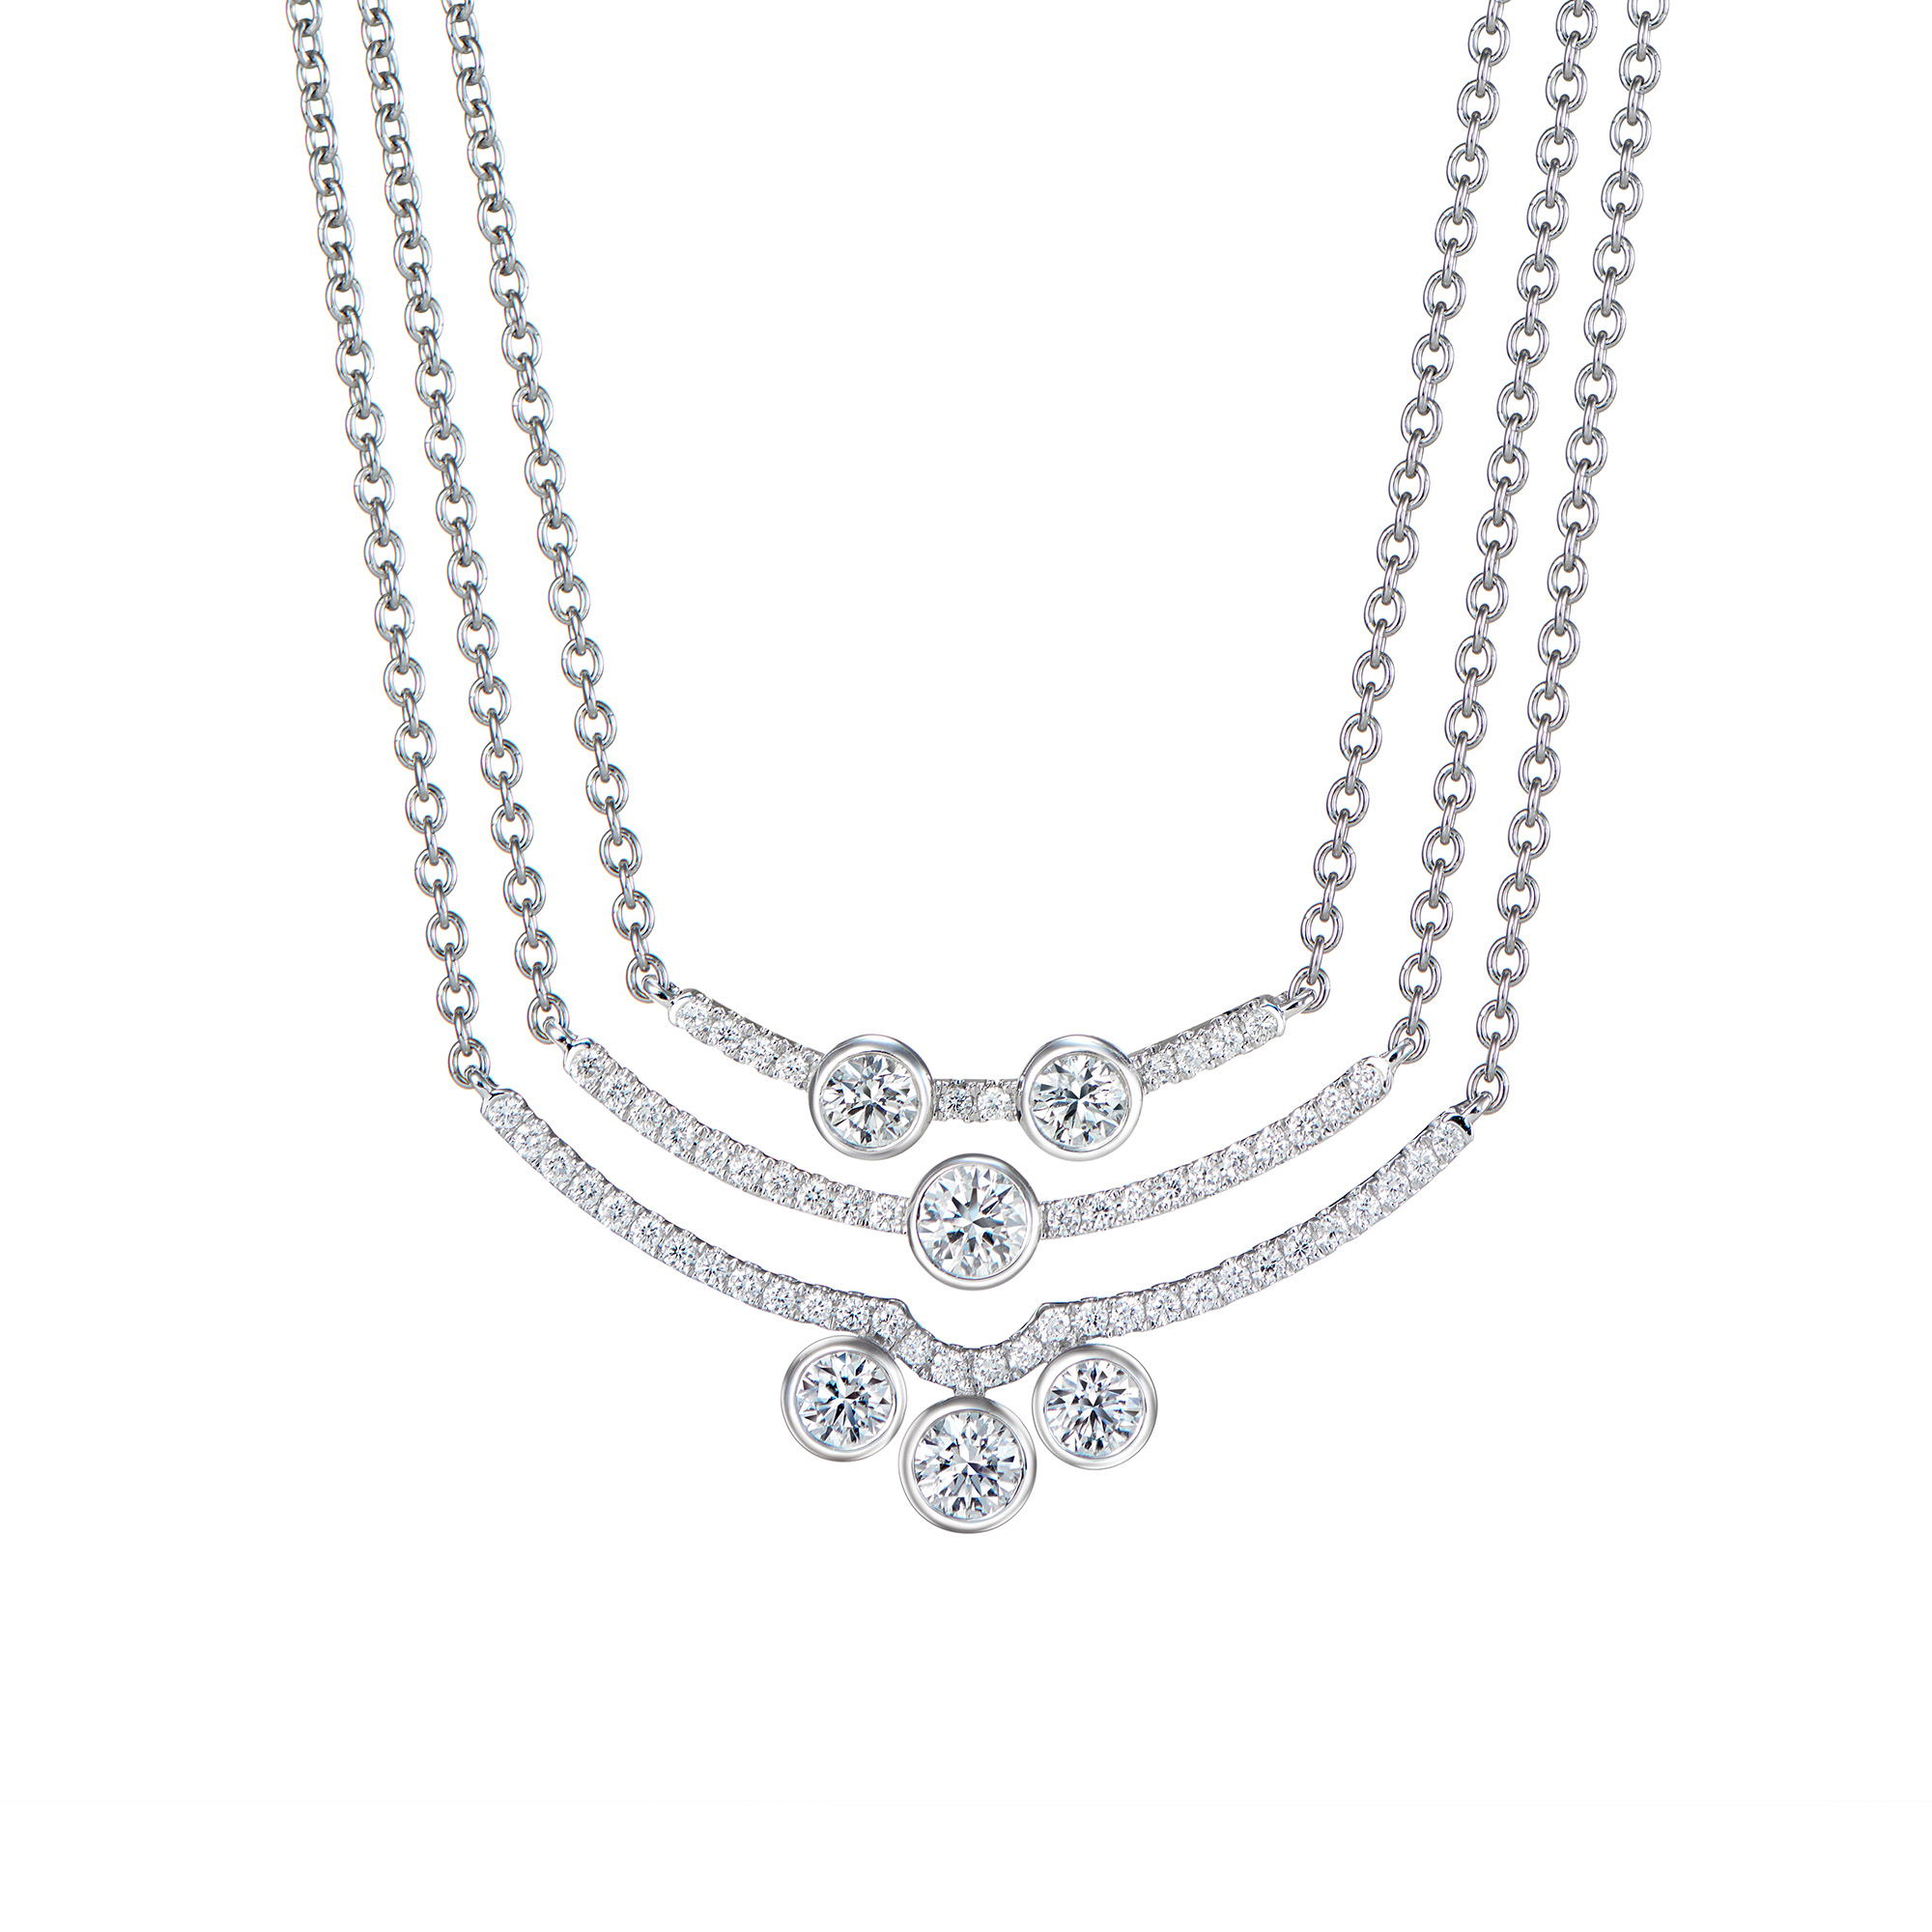 Forevermark Tribute™ Collection Diamond Necklaces